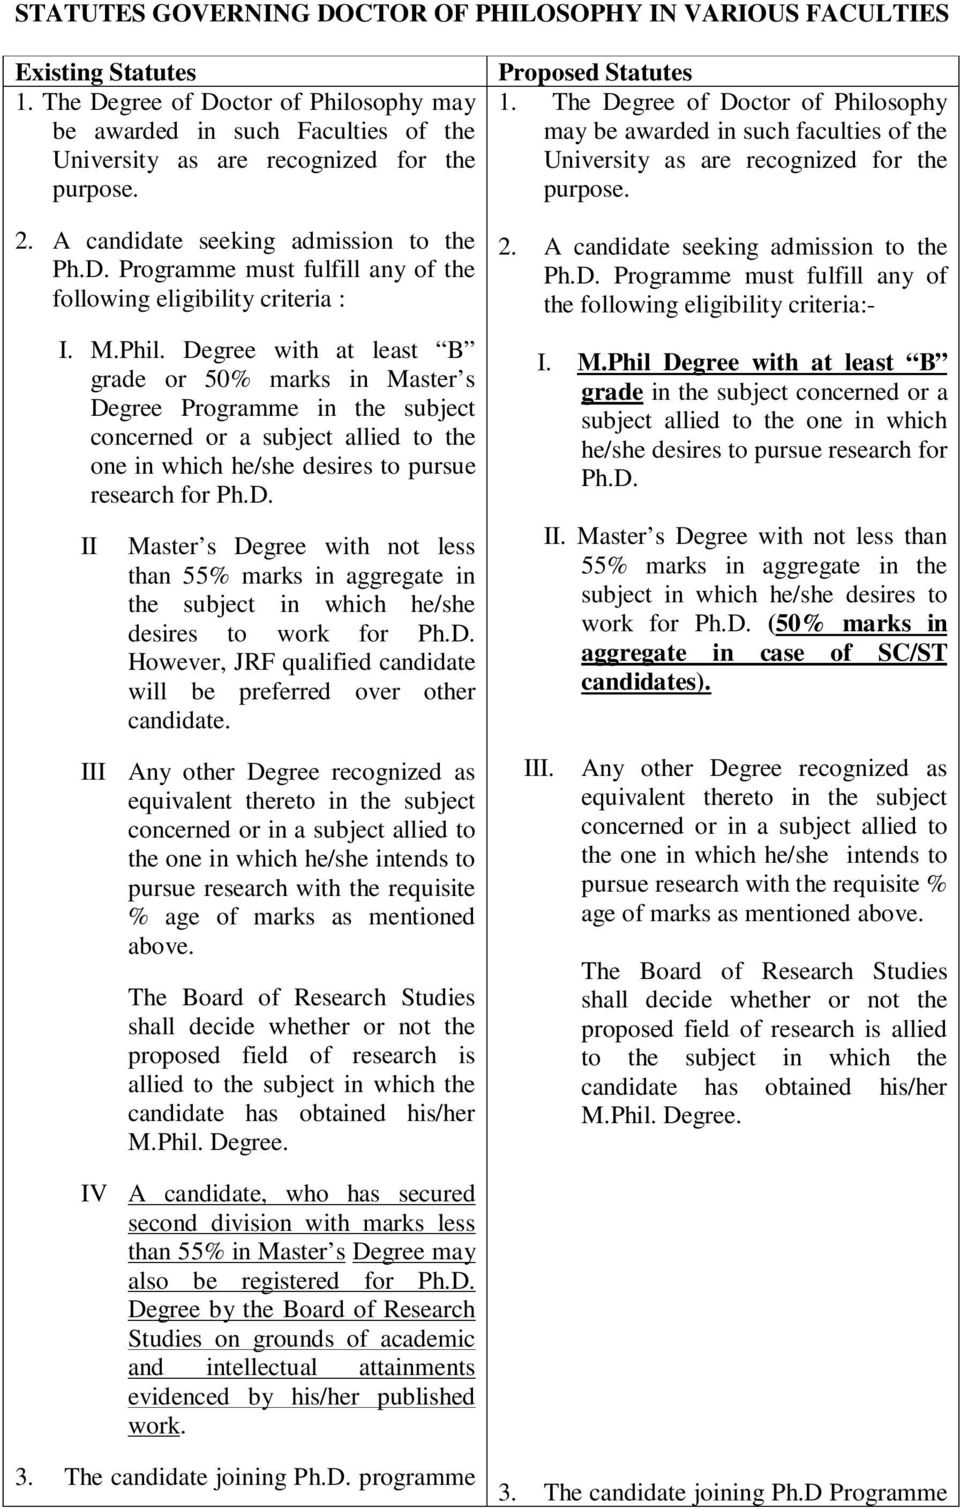 M.Phil. Degree with at least B grade or 50% marks in Master s Degree Programme in the subject concerned or a subject allied to the one in which he/she desires to pursue research for Ph.D. II Master s Degree with not less than 55% marks in aggregate in the subject in which he/she desires to work for Ph.